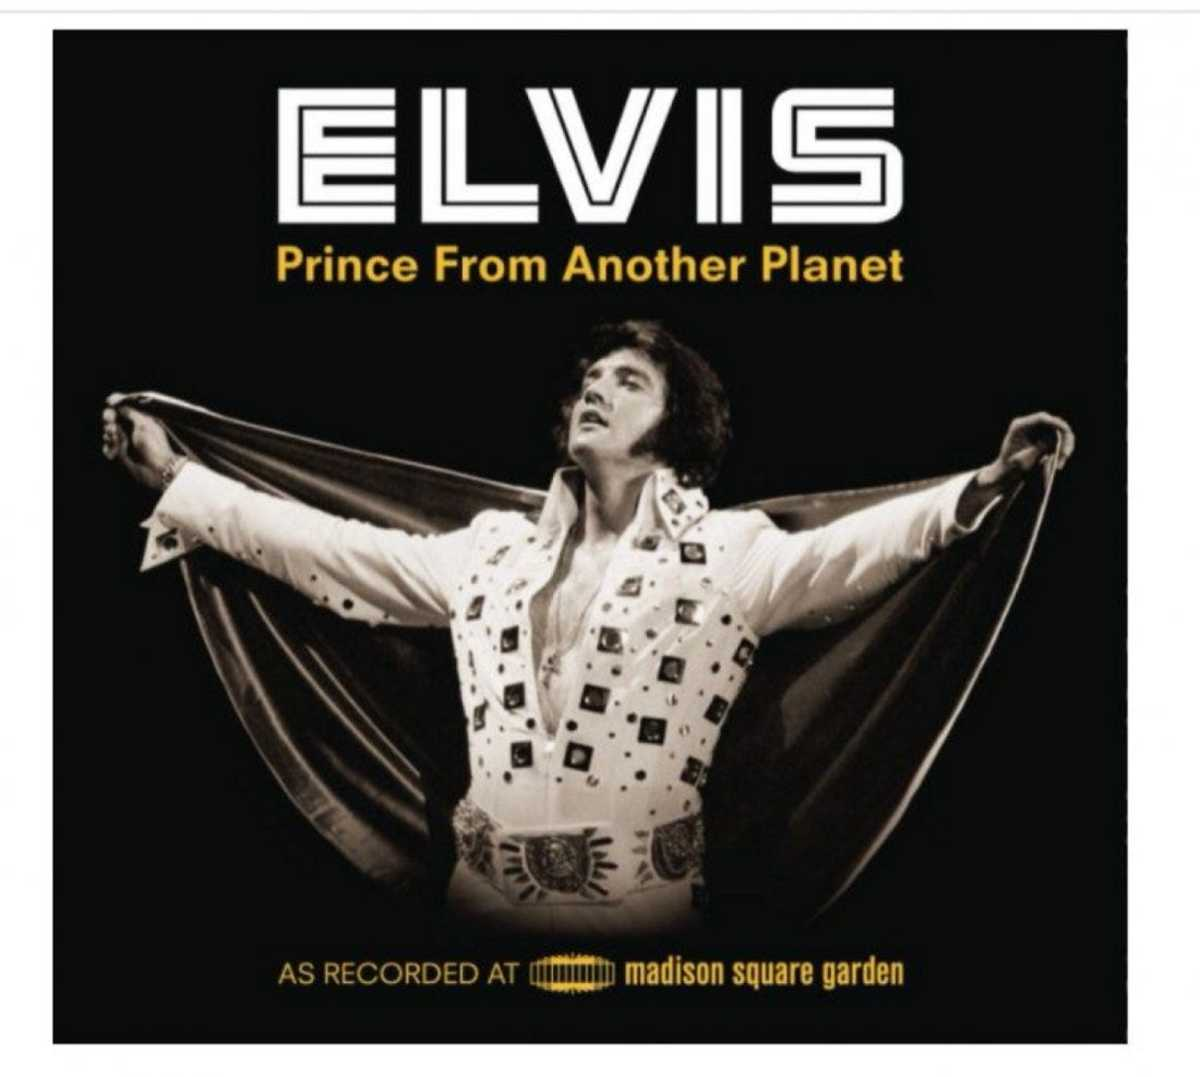 """Elvis is also wearing the jumpsuit on the cover of the 40th Anniversary Edition of the live concert recordings from his shows at Madison Square Garden in June 1972. """"Prince From Another Planet"""" takes its title from a New York Times headline that accompanied its rave review of the King of Rock 'n' Roll's four sold-out shows at the Garden."""